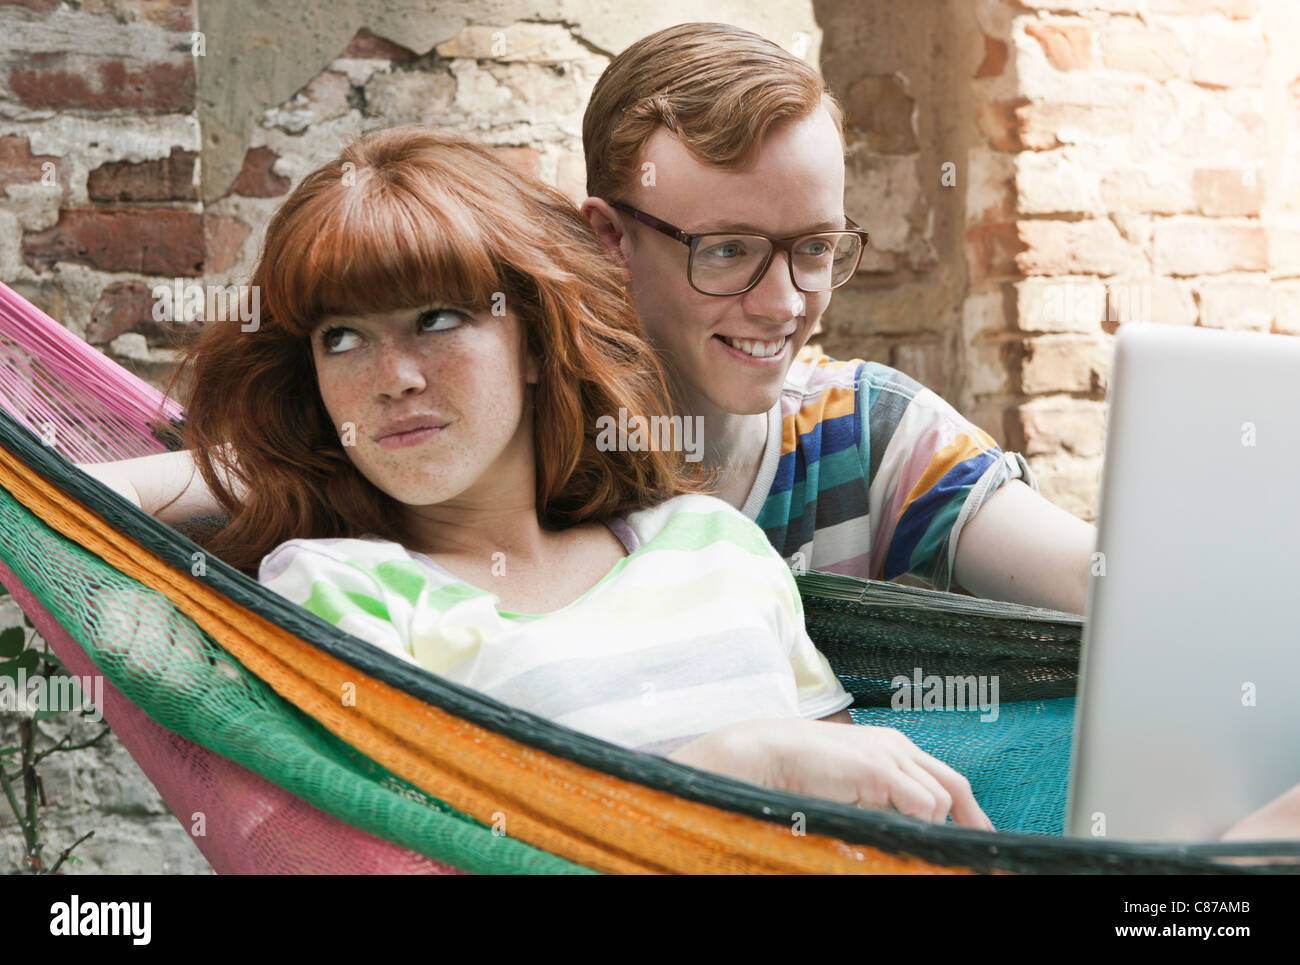 Germany, Berlin, Young woman using laptop in hammock with young man beside her Stock Photo